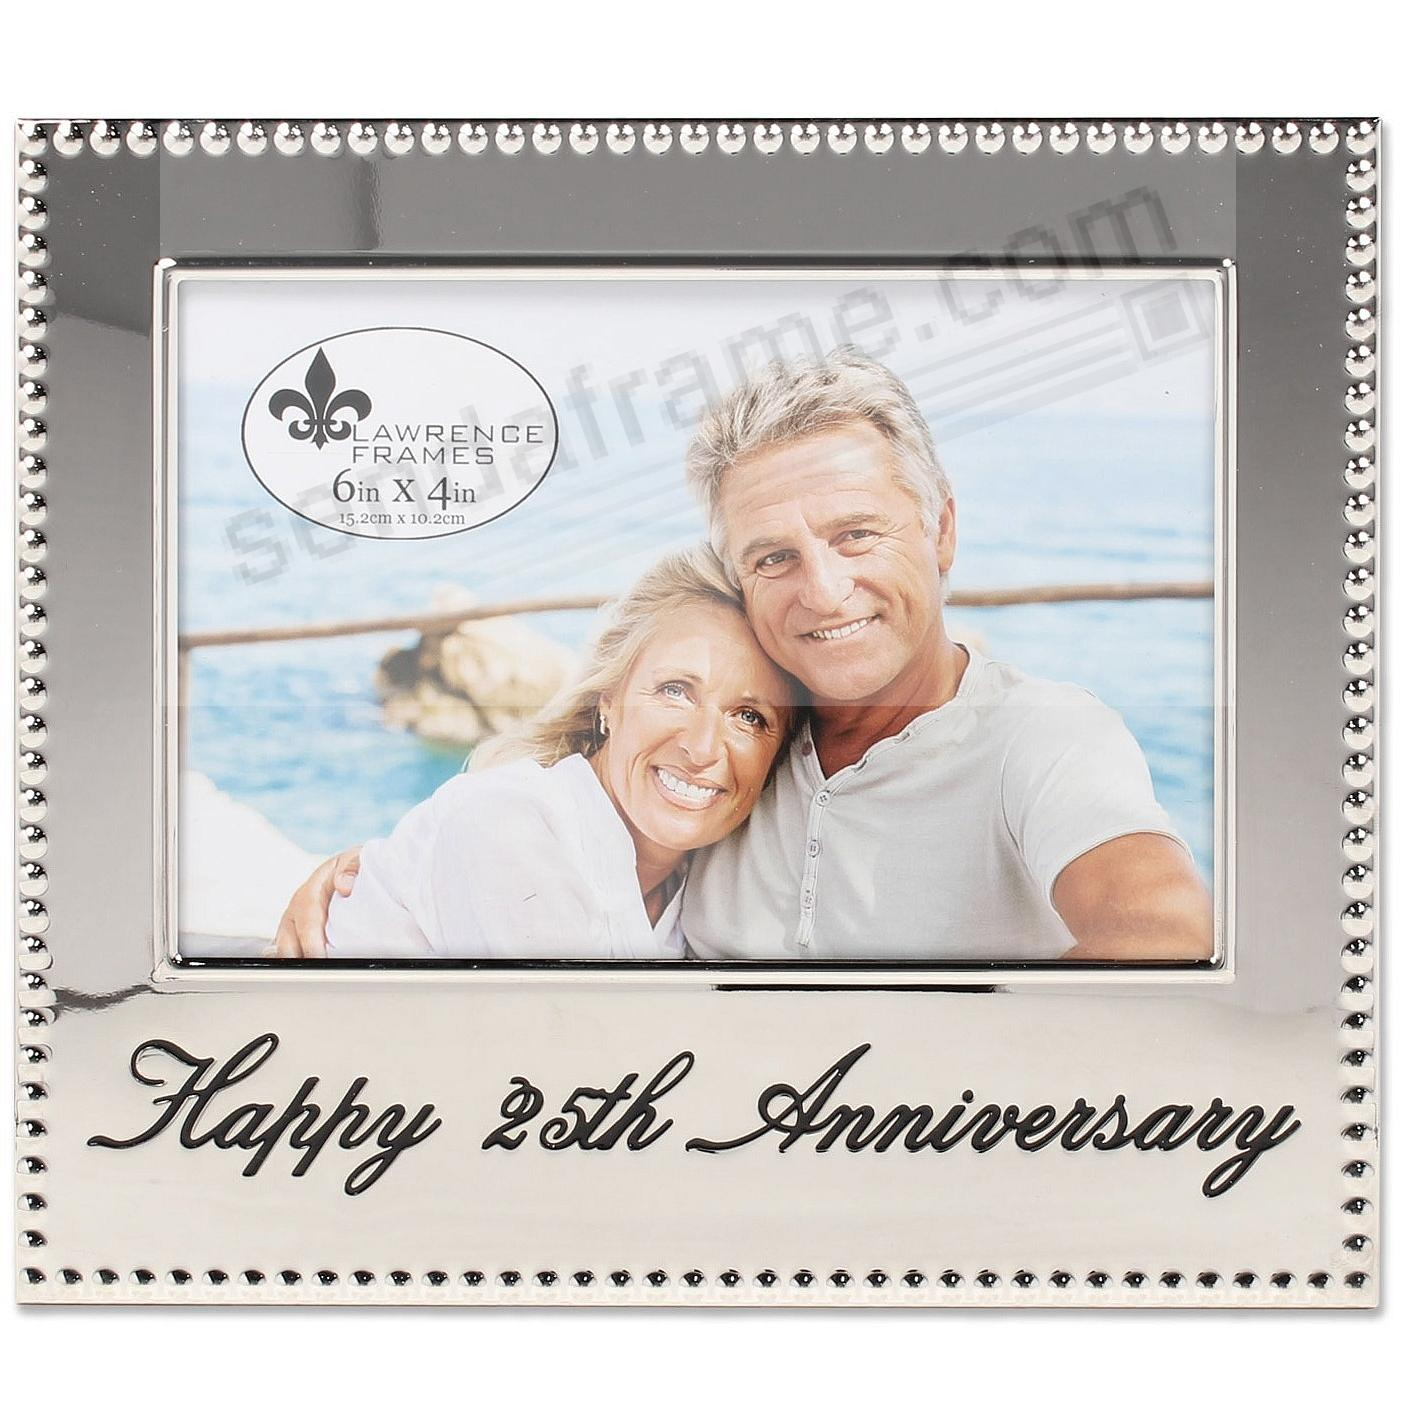 HAPPY 25th ANNIVERSARY special engraved celebration frame - Picture ...